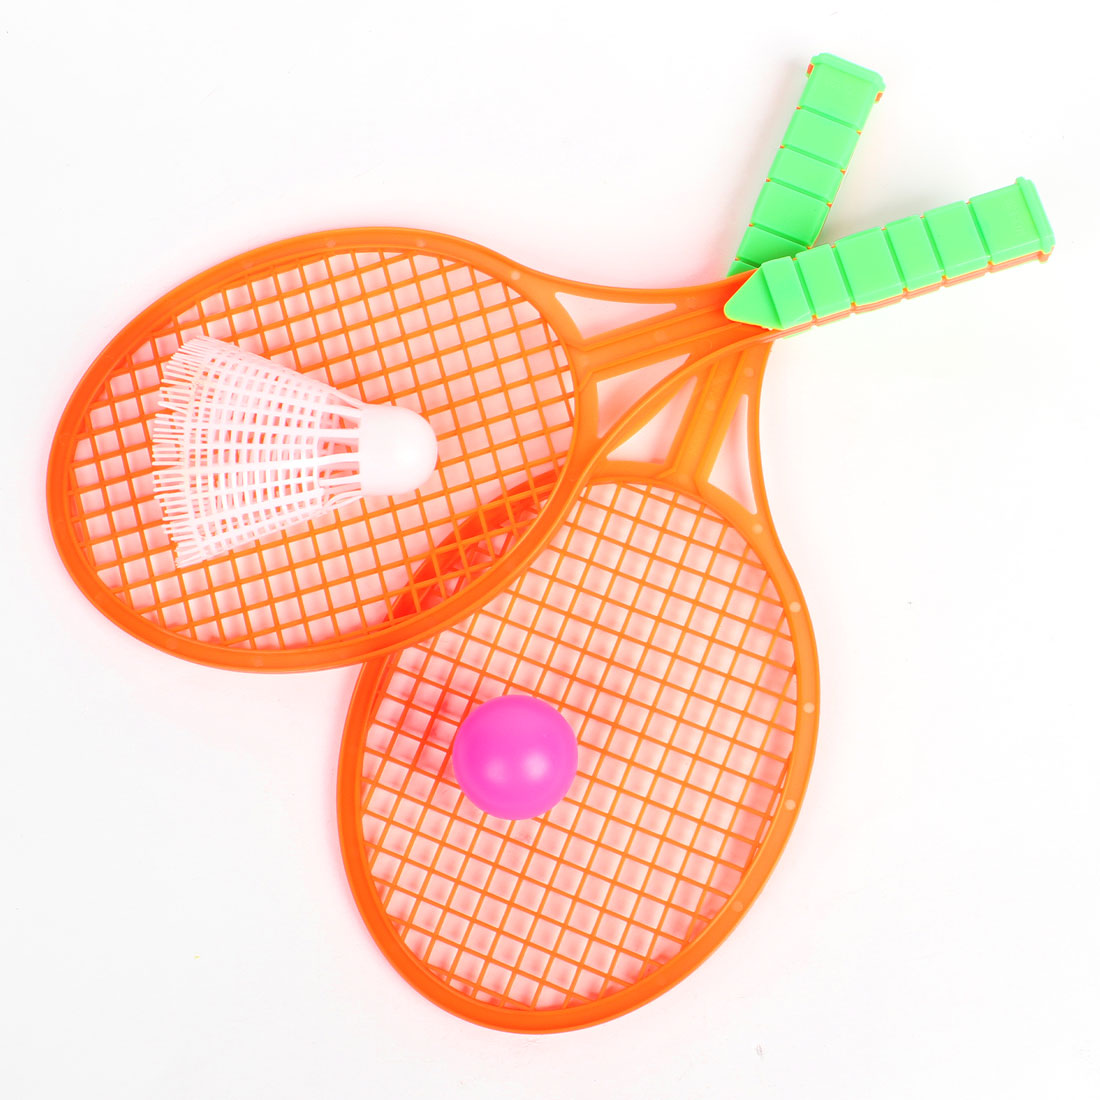 Child Kid 3 in 1 Plastic Pingpong Shuttlecock Orange Red Badminton Racket Set